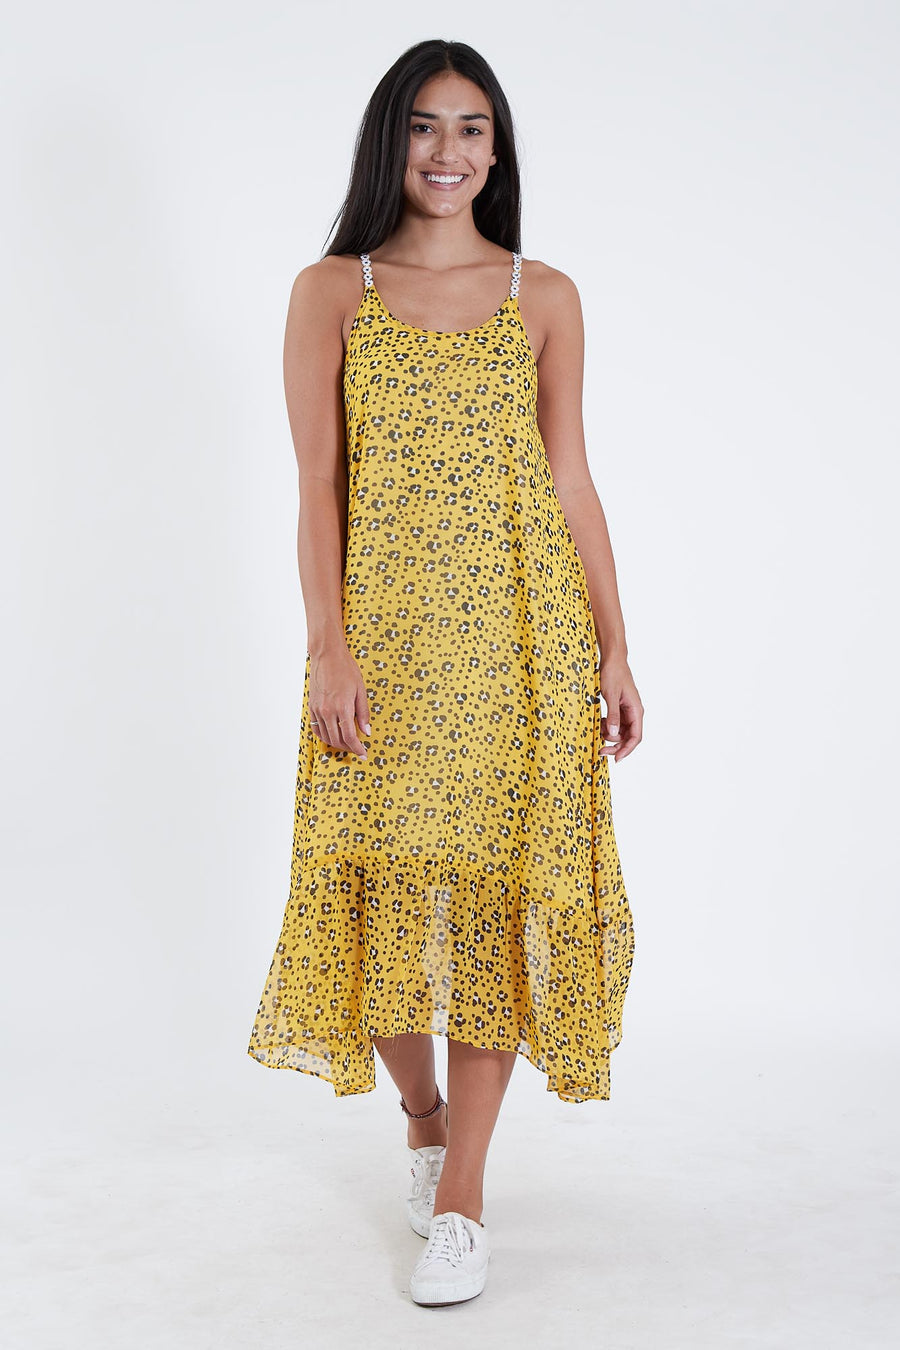 DRAKE DRESS YELLOW LEOPARD